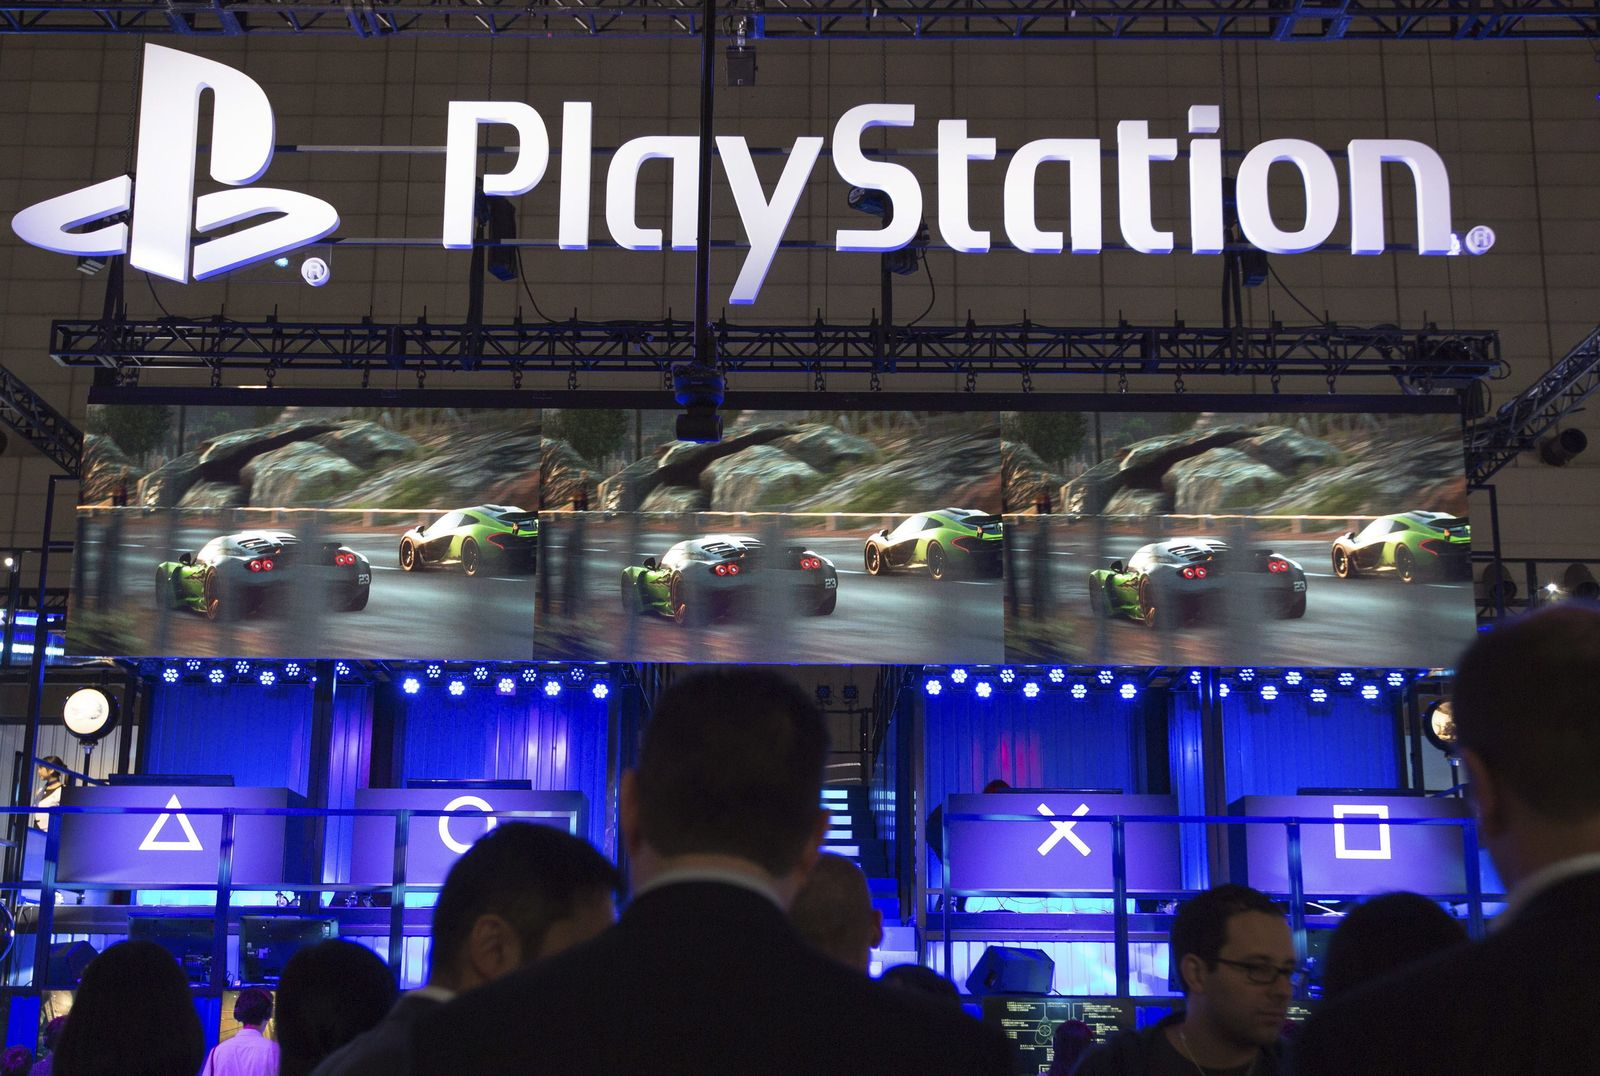 PlayStation outage stretches into third day